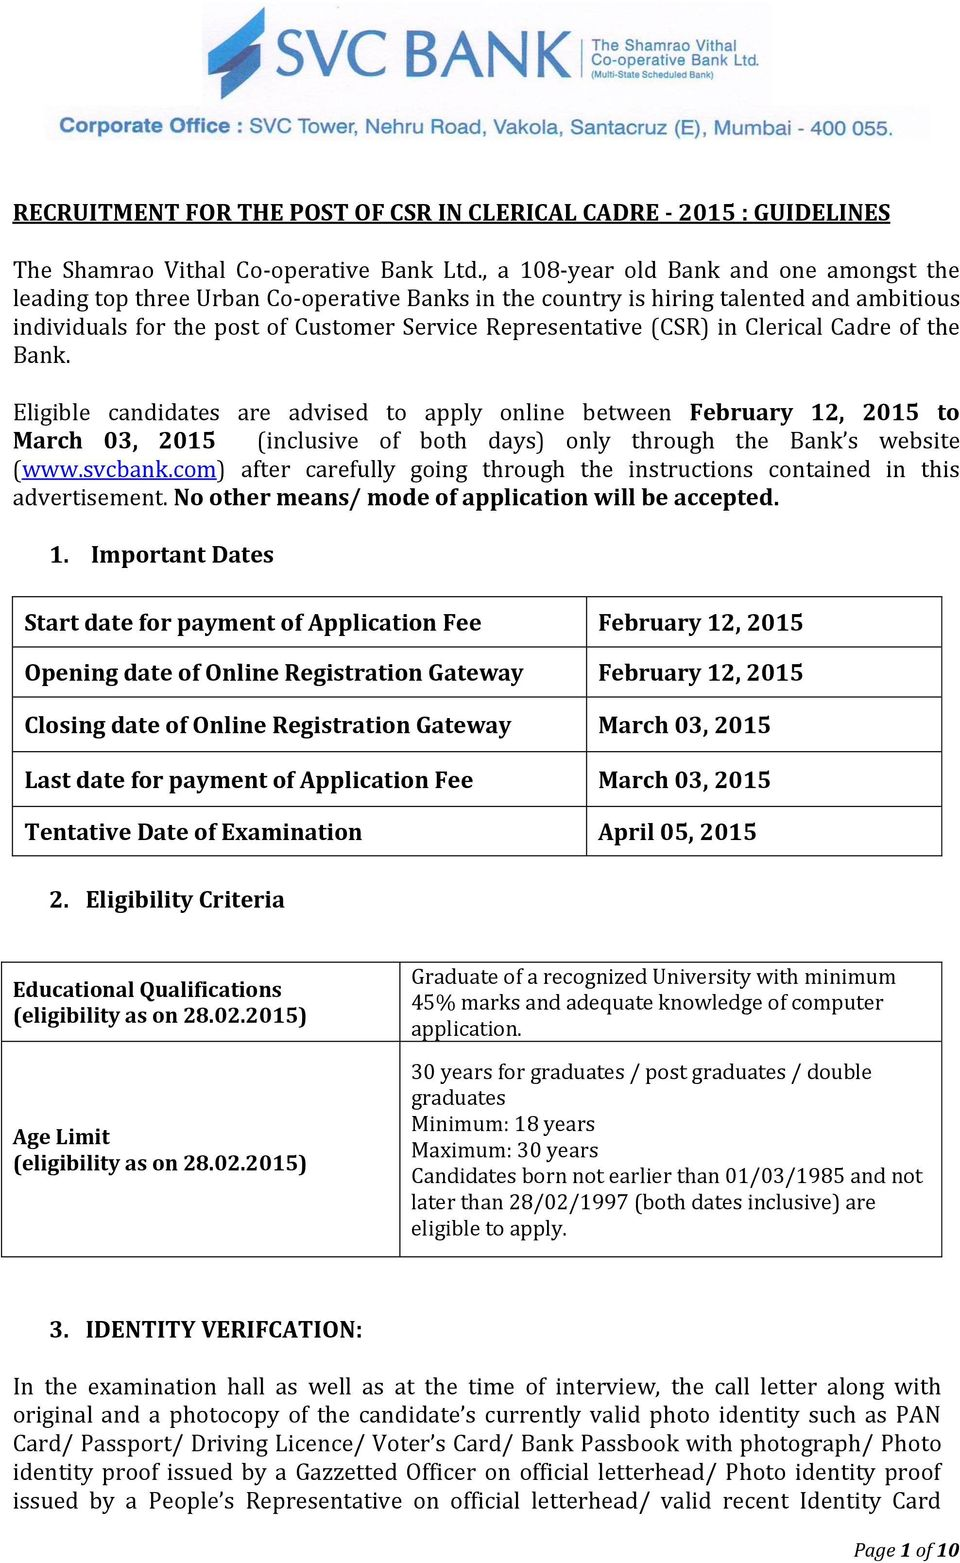 in Clerical Cadre of the Bank. Eligible candidates are advised to apply online between February 12, 2015 to March 03, 2015 (inclusive of both days) only through the Bank s website (www.svcbank.